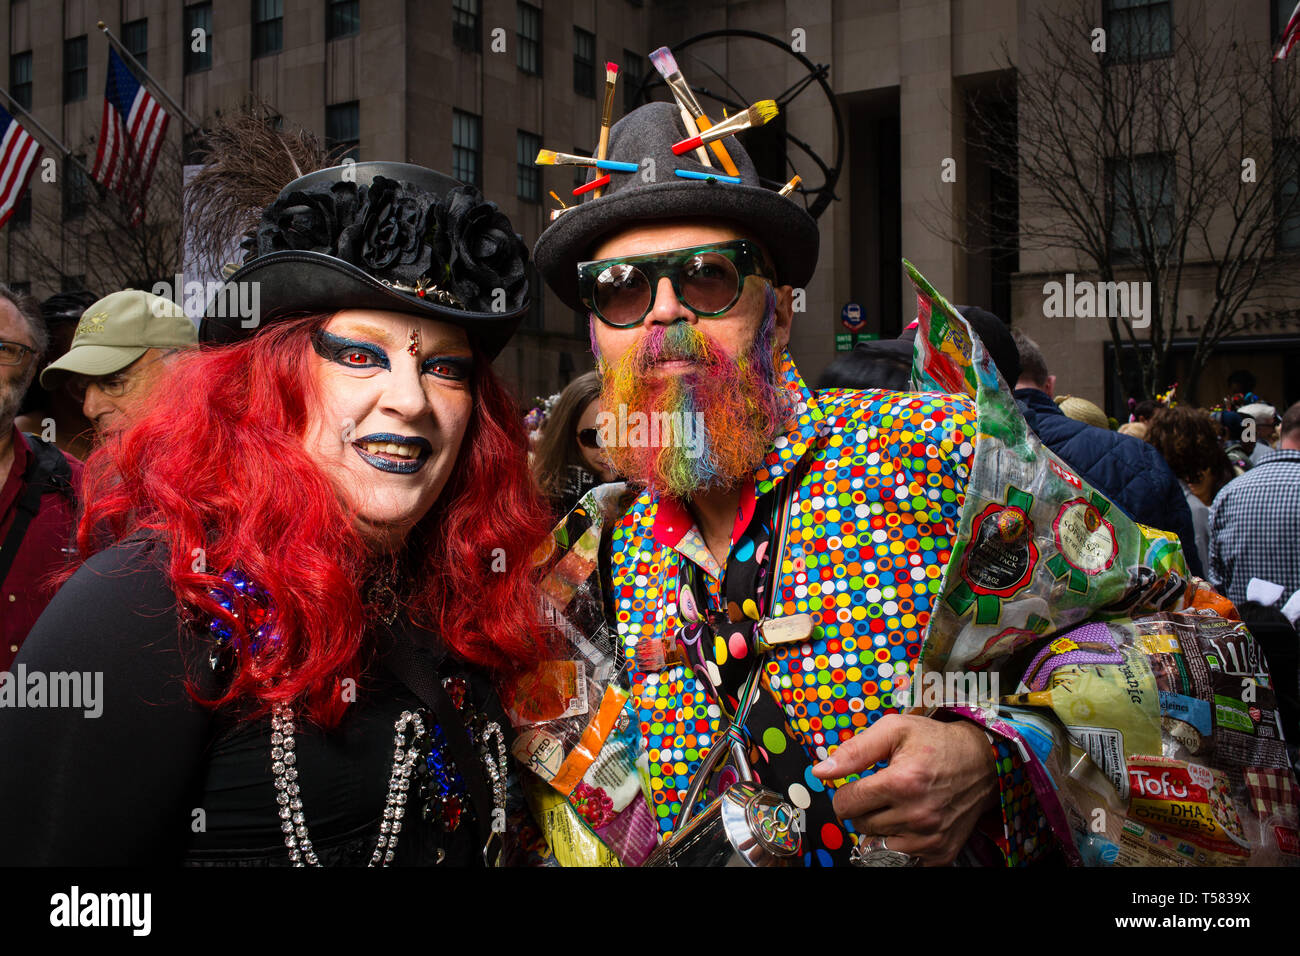 New York, NY - 21 April 2019. A woman with bright red hair and a black hat trimmed with black flowers next to a man with a hat bristling with artist's - Stock Image